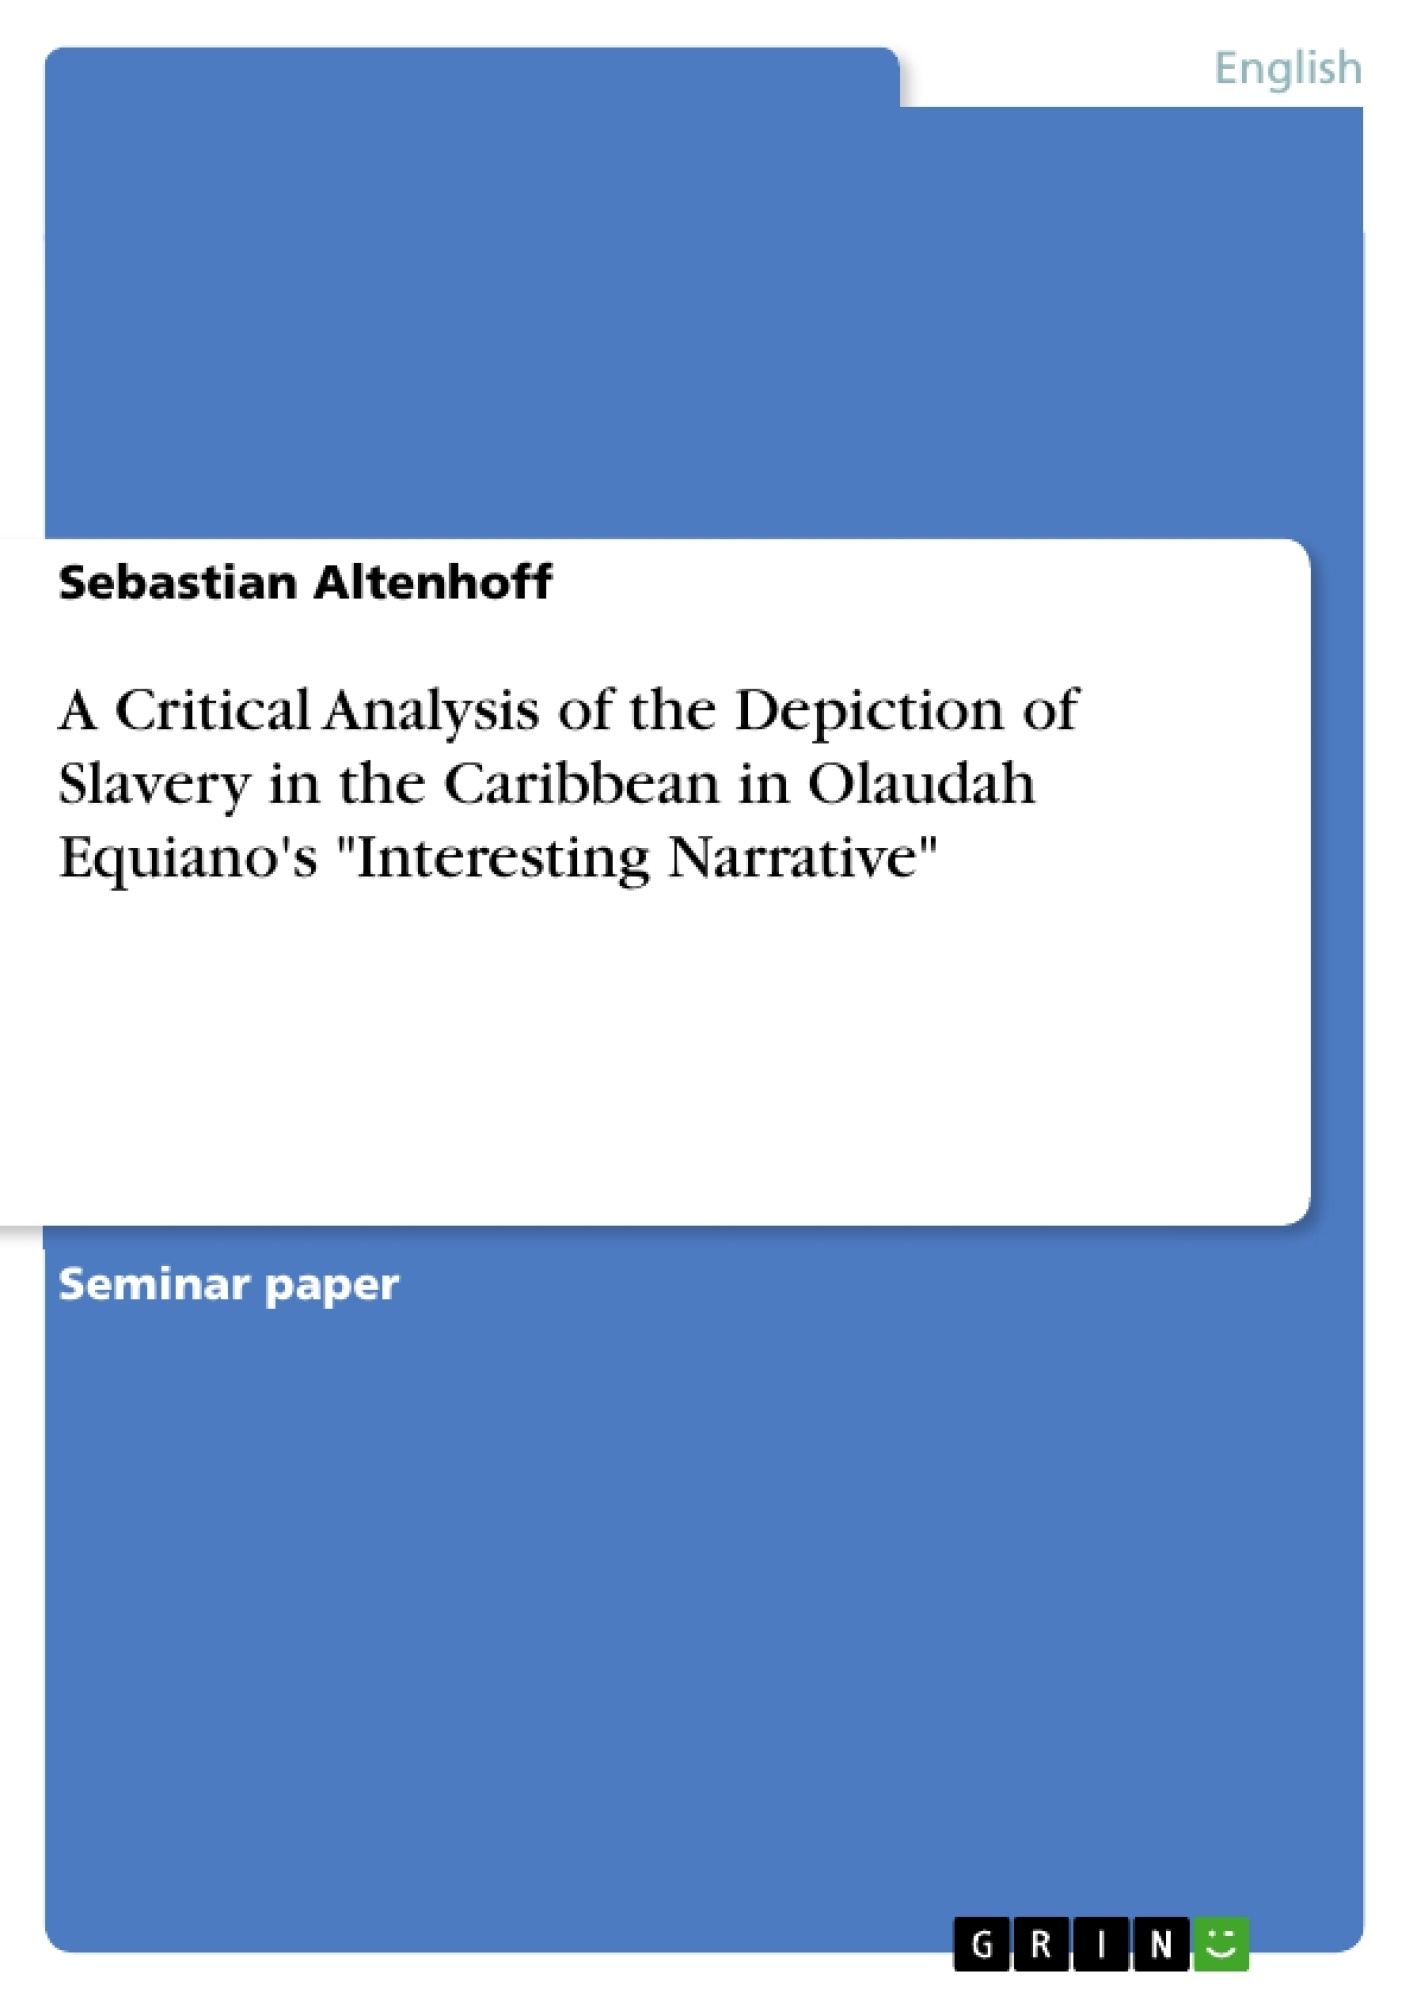 a critical analysis of the depiction of slavery in the caribbean a critical analysis of the depiction of slavery in the caribbean publish your master s thesis bachelor s thesis essay or term paper